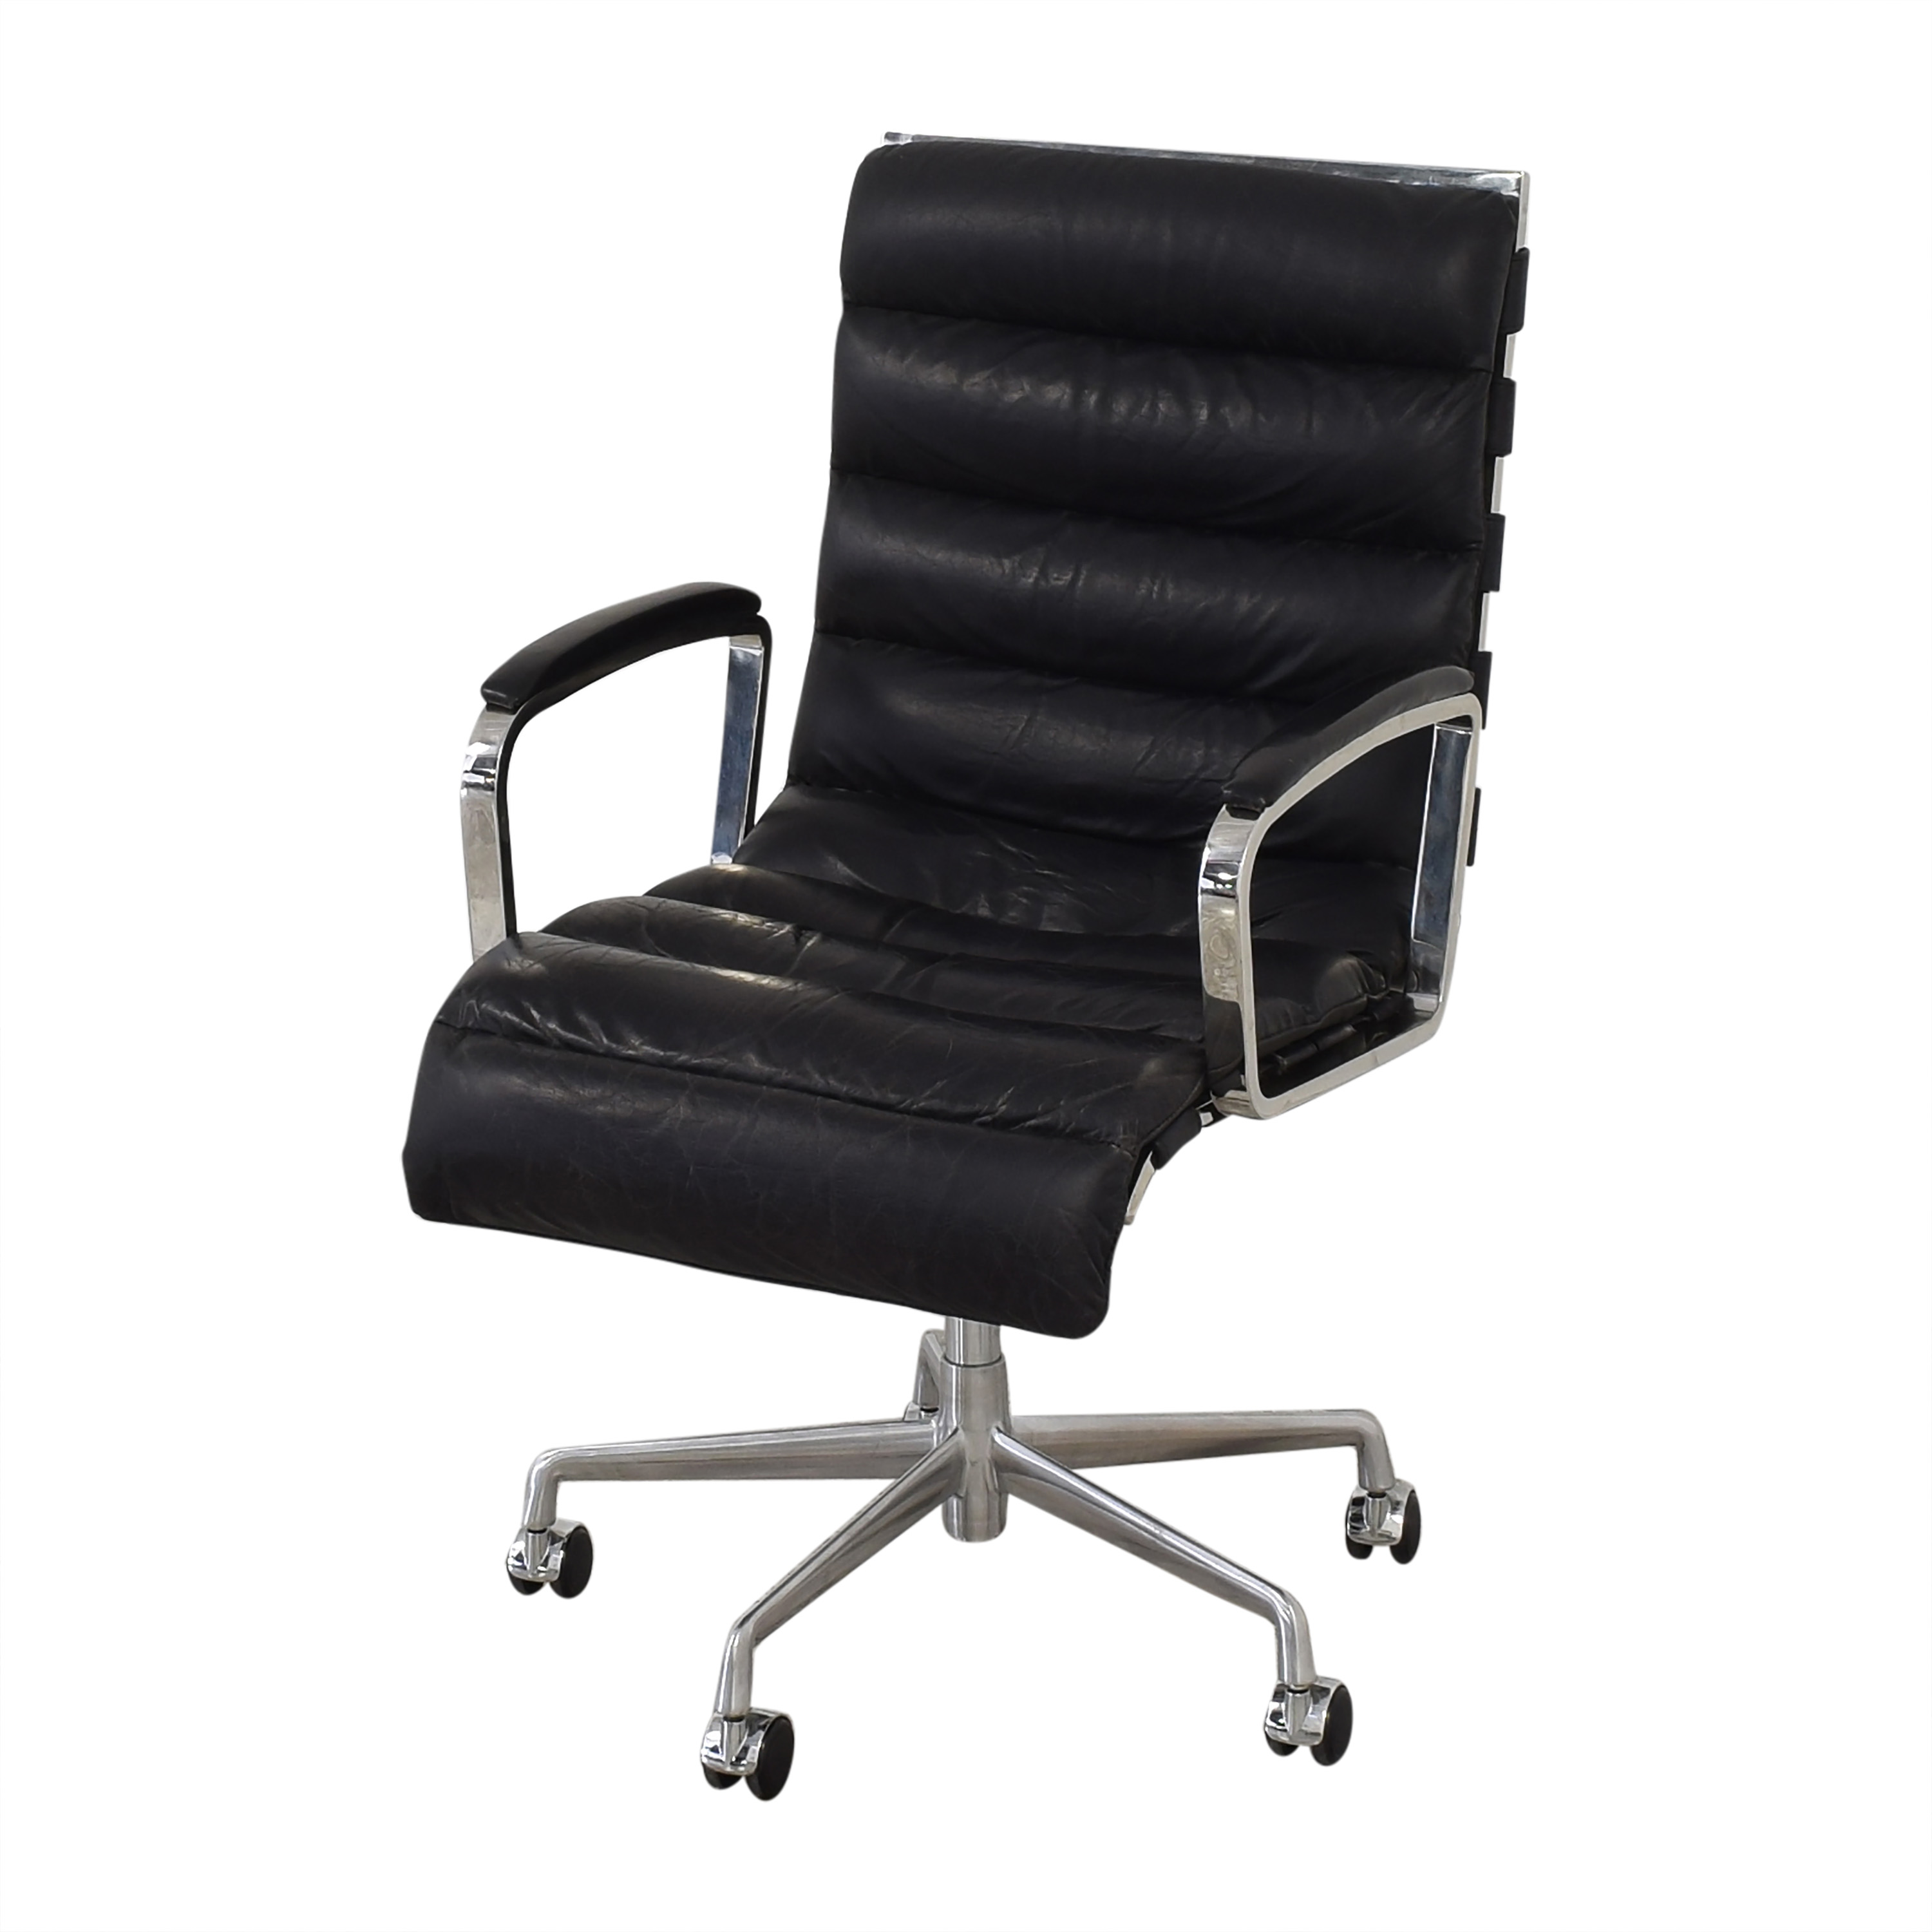 Restoration Hardware Restoration Hardware Oviedo Desk Chair for sale